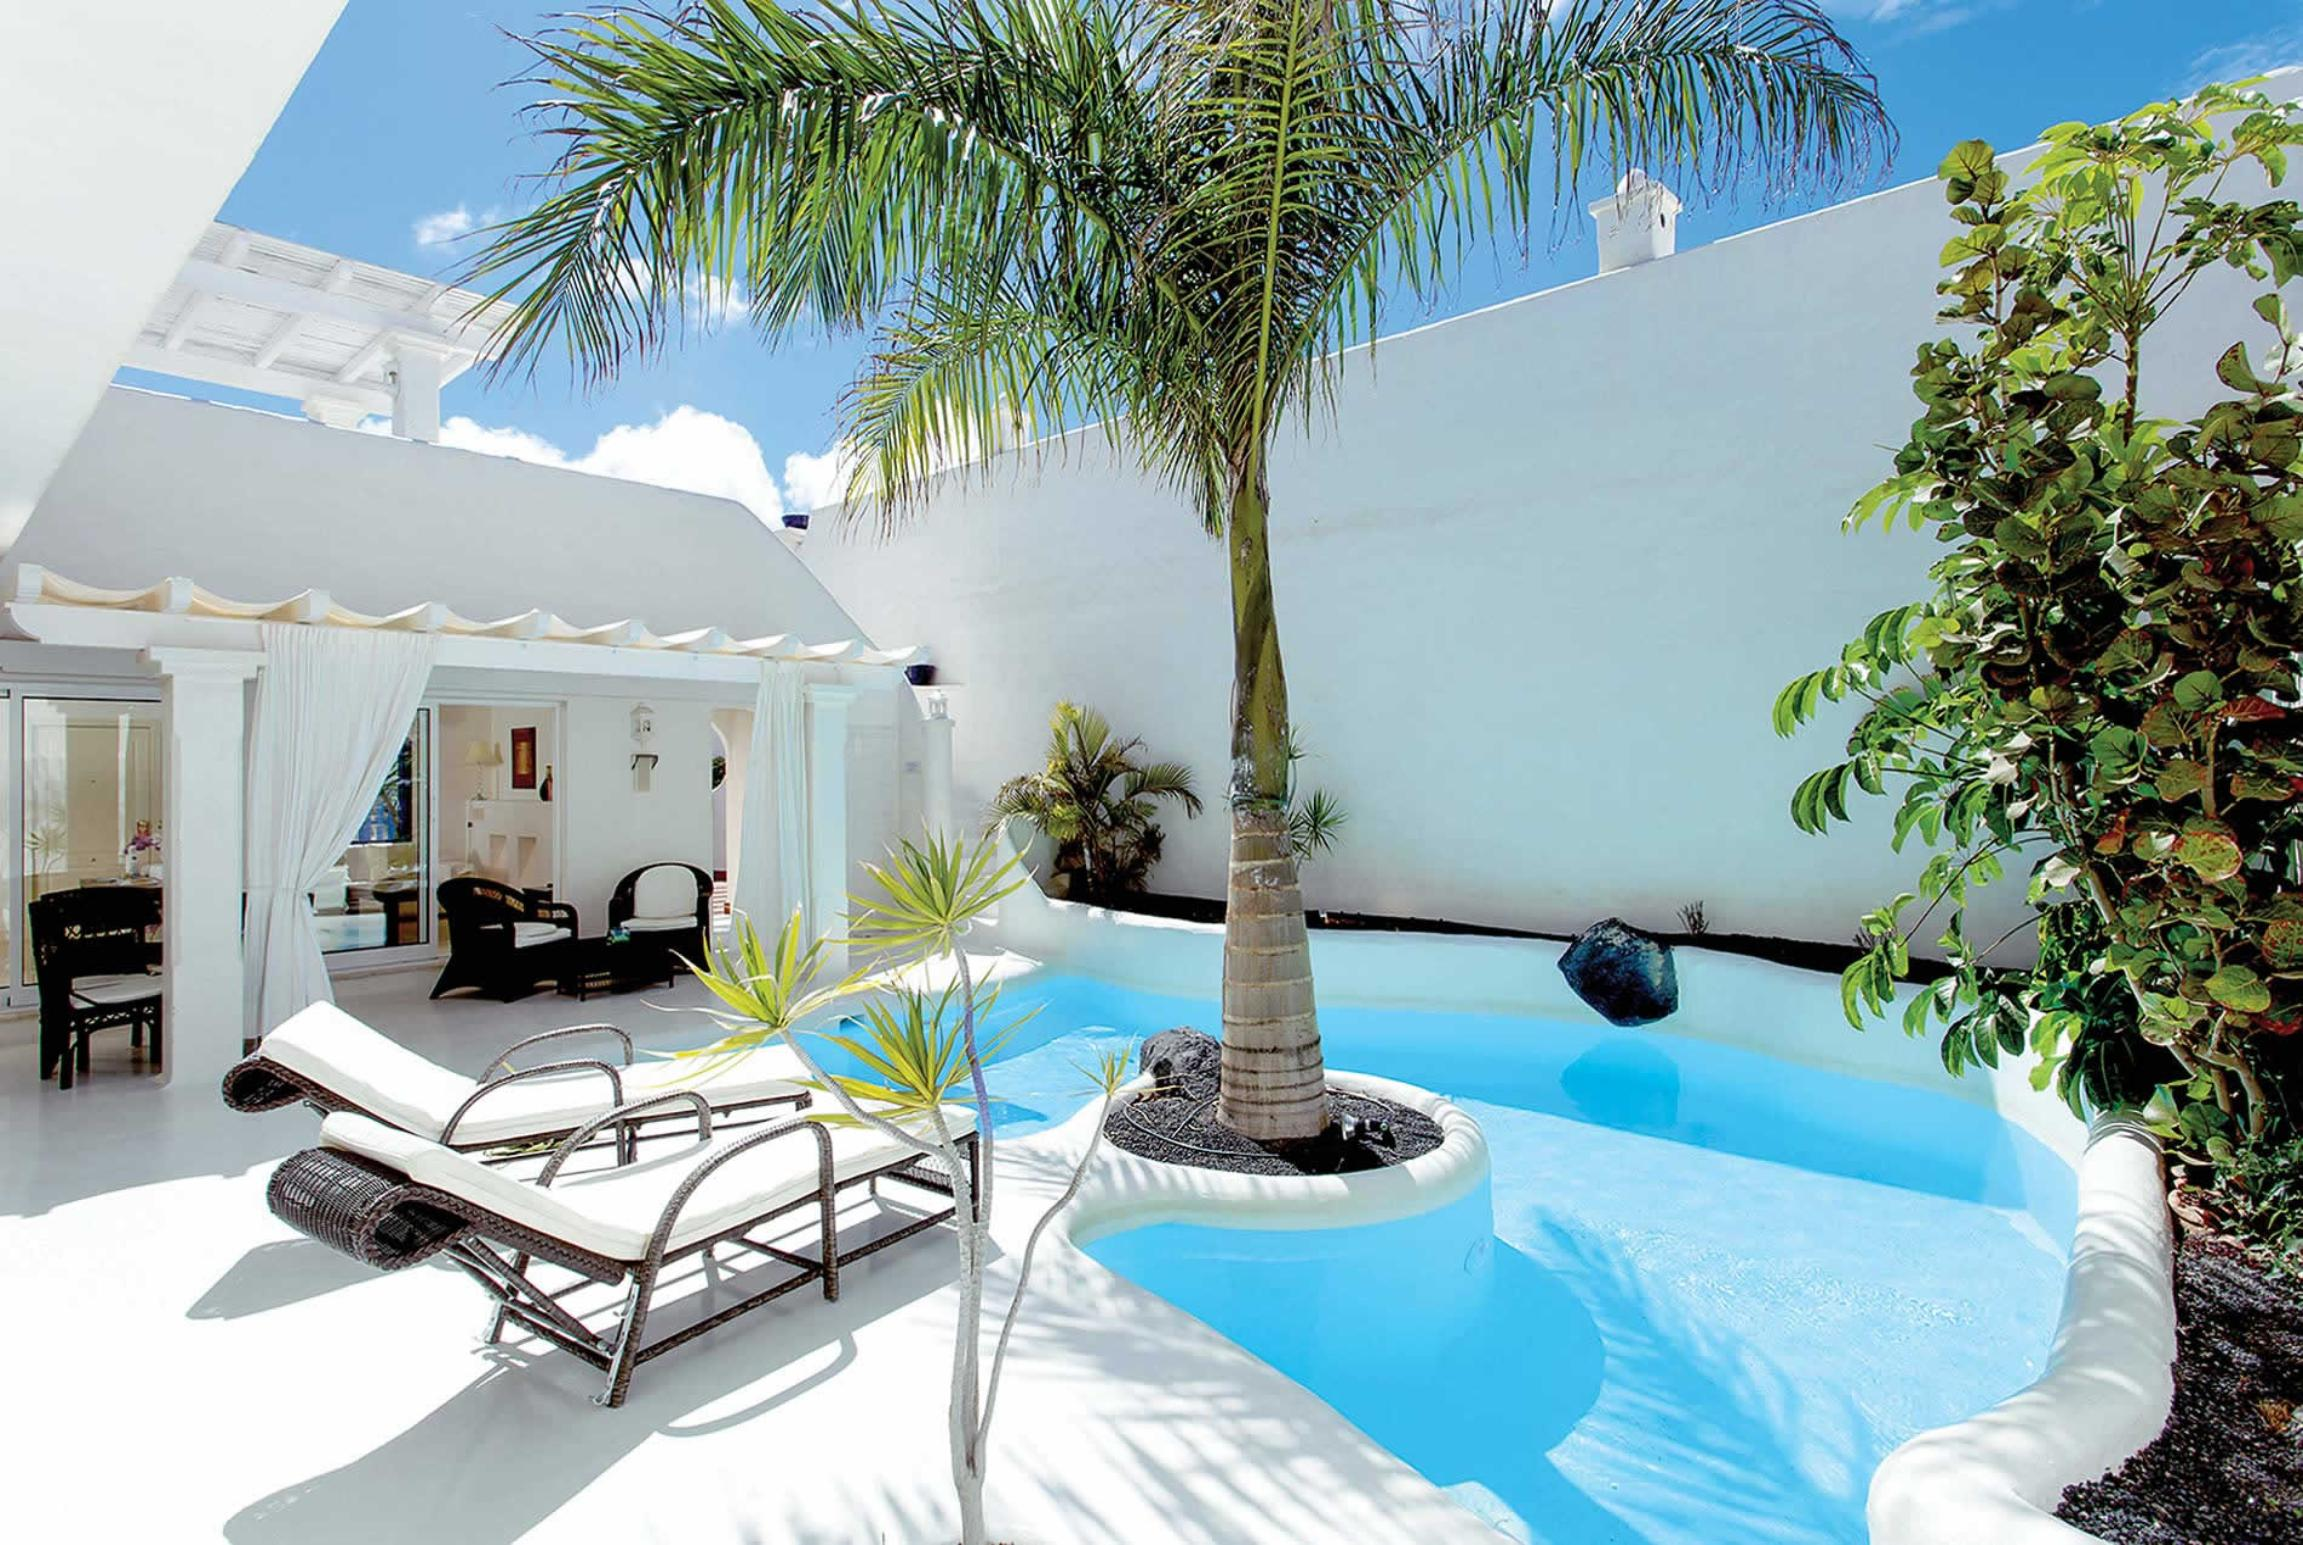 Read more about Villas Jardines villa